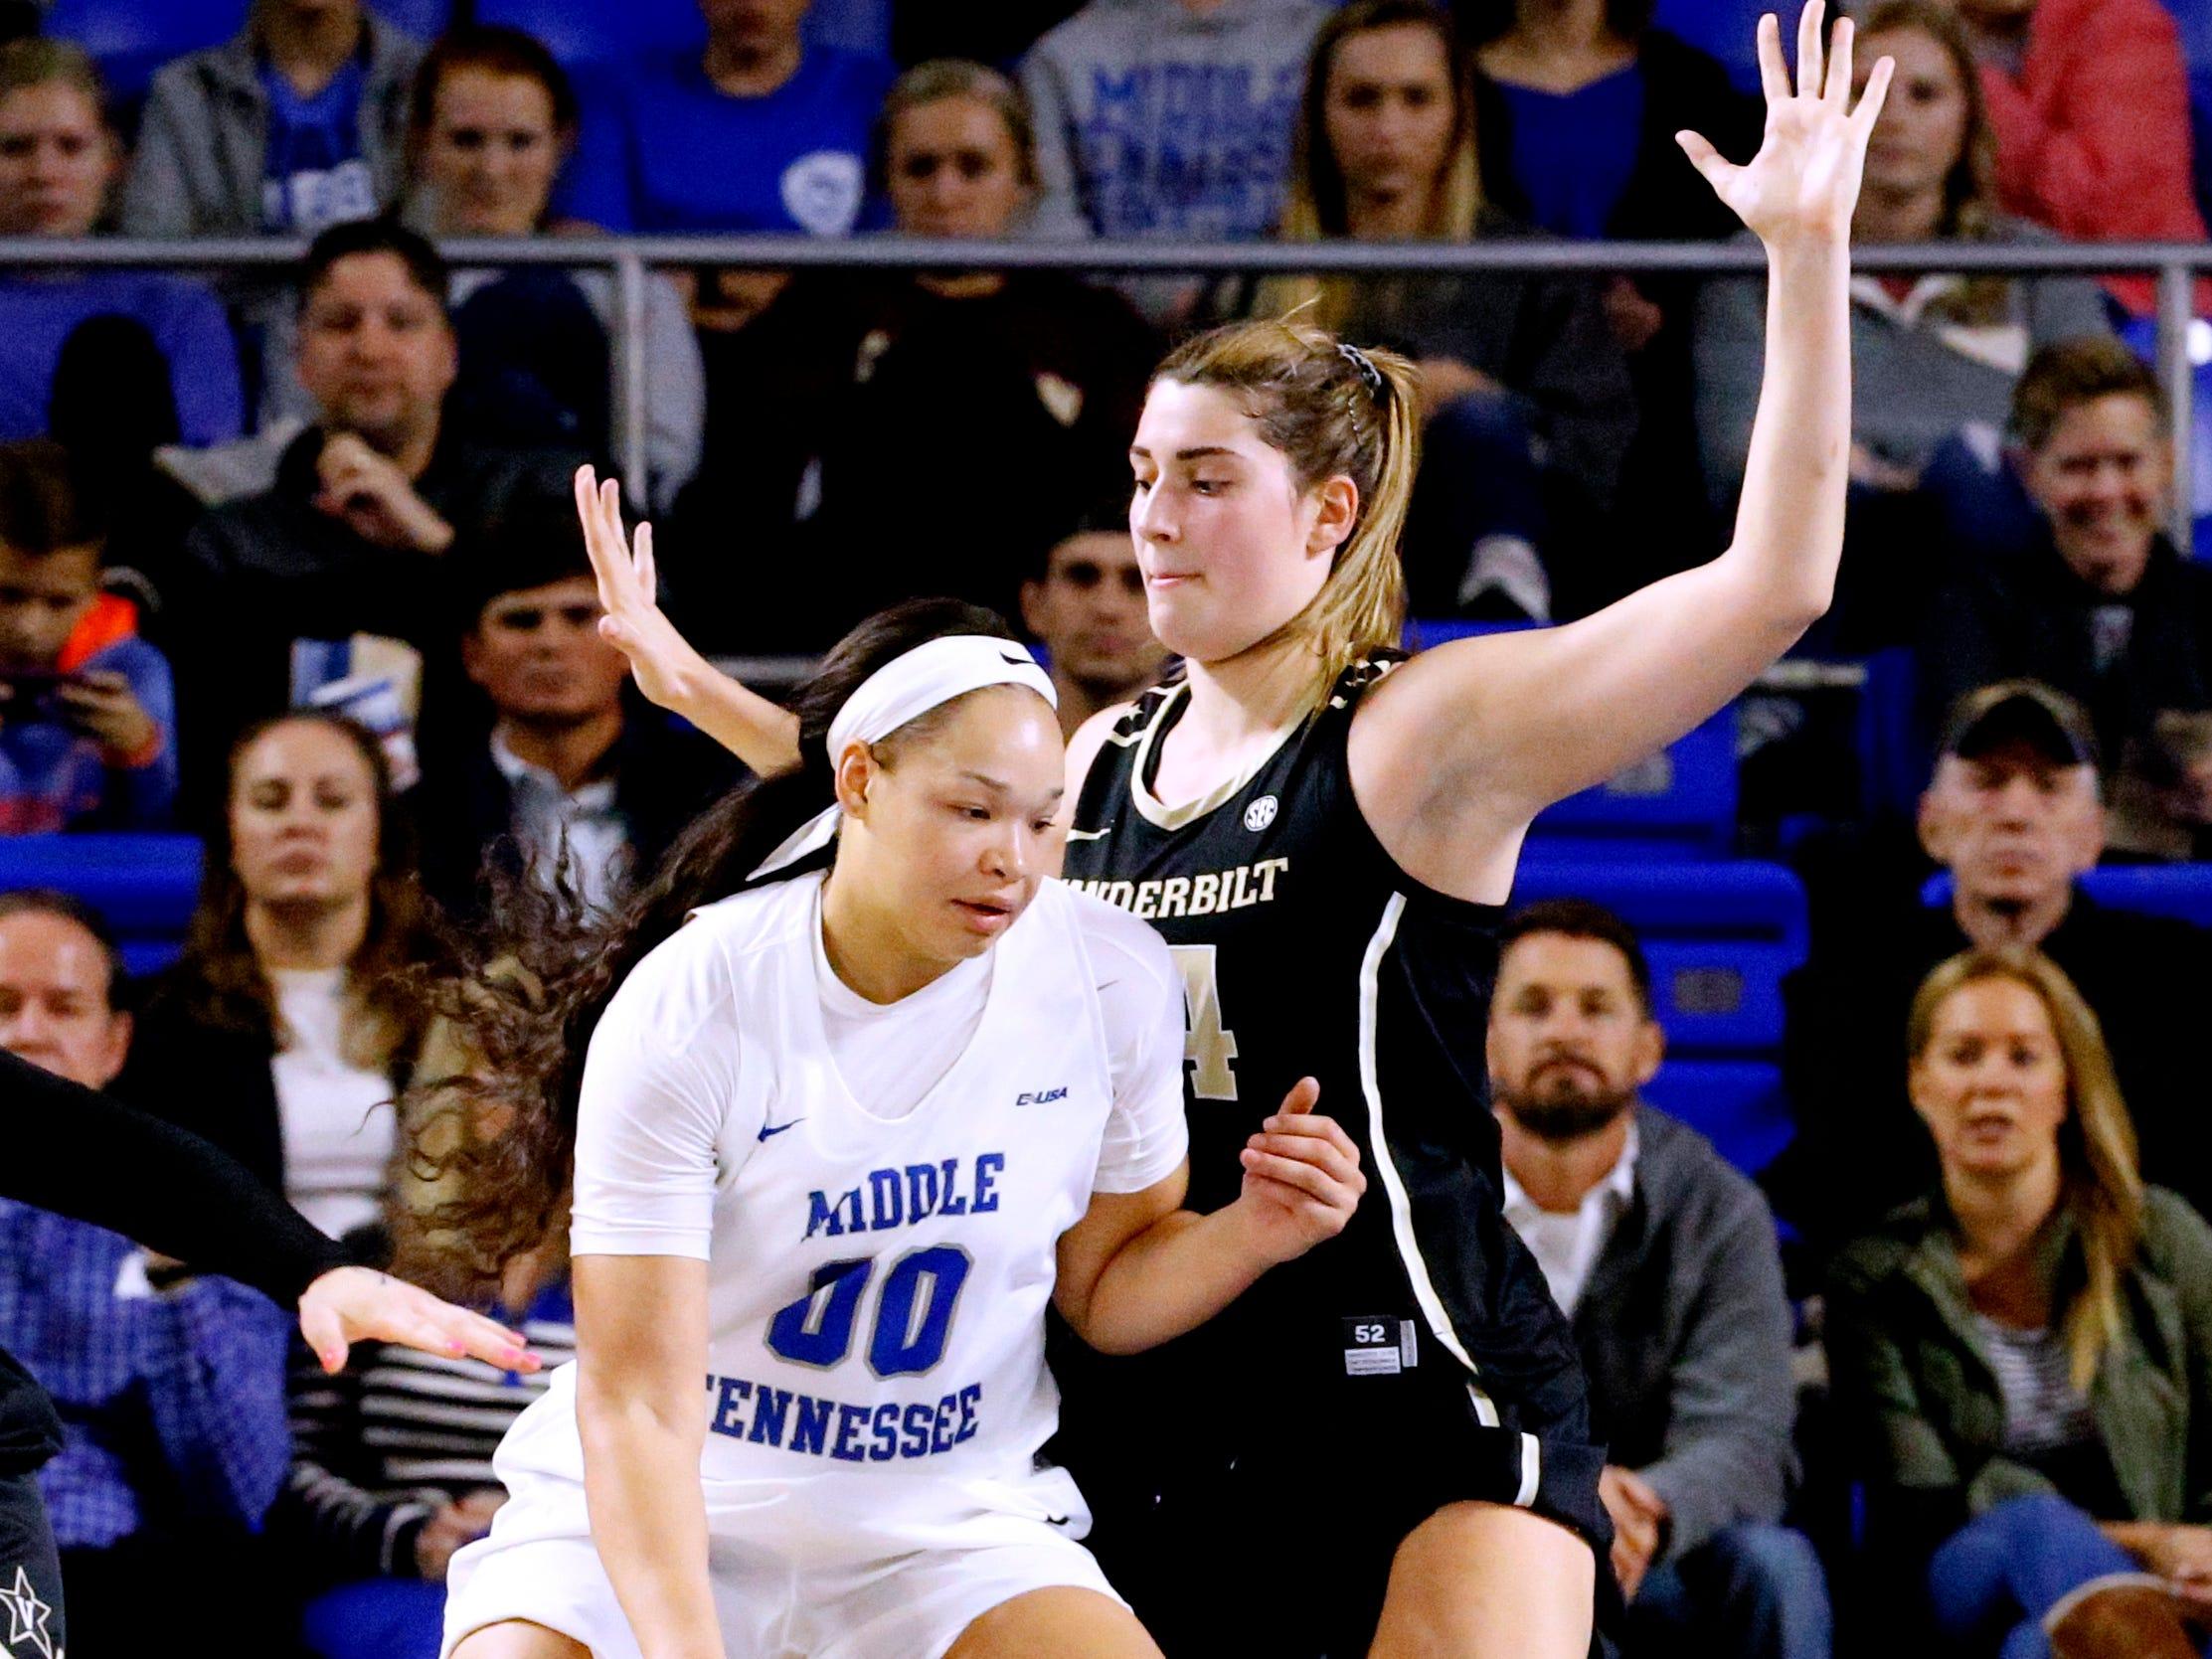 MTSU's Alex Johnson (00) pushes to the basket as Vanderbilt's Mariella Fasoula (34) guards her during the women's home opening game at MTSU on Friday, Nov. 8, 2018.